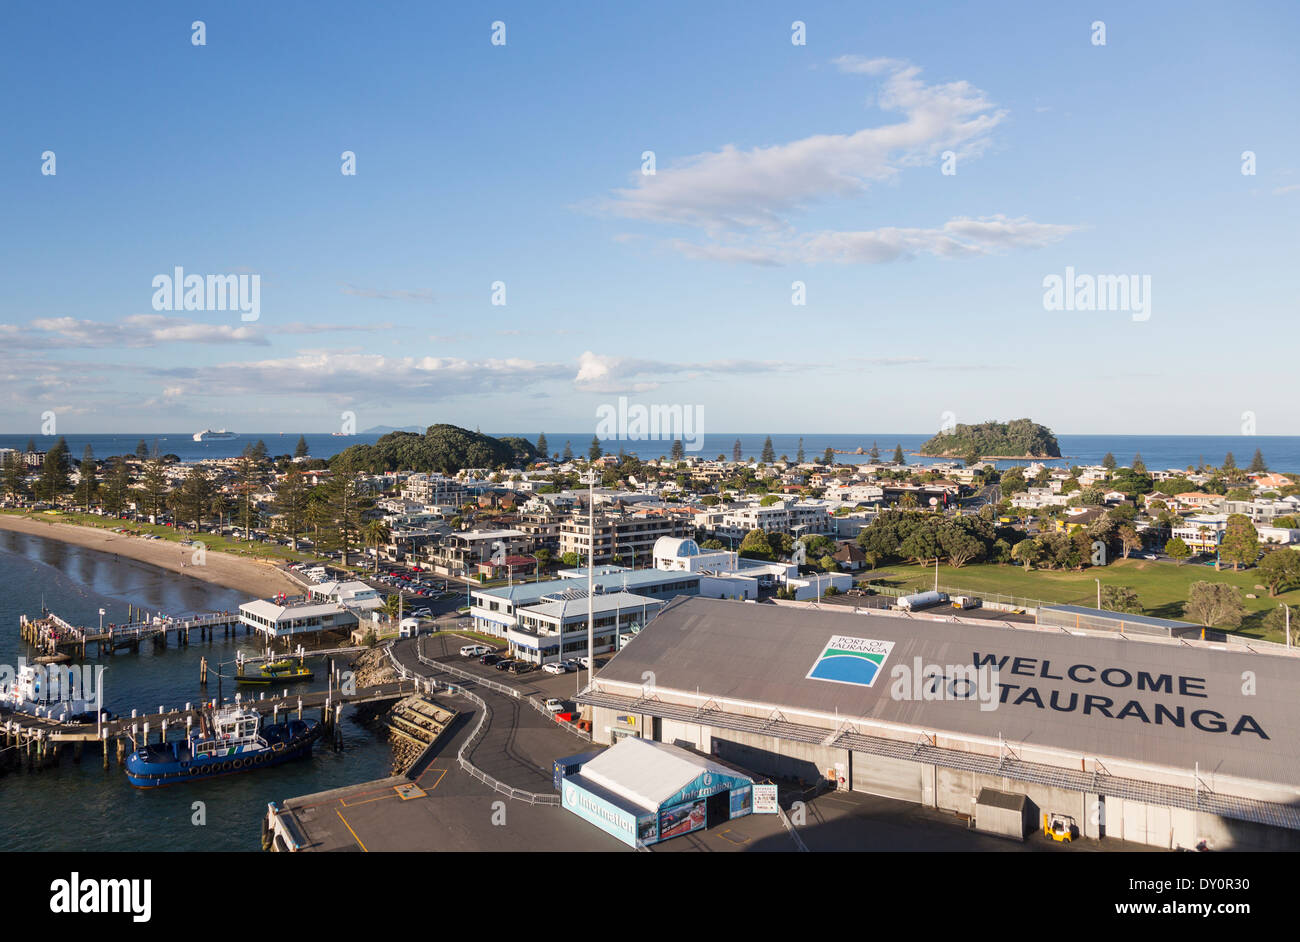 Tauranga, New Zealand - Overview of the town and harbor area - Stock Image